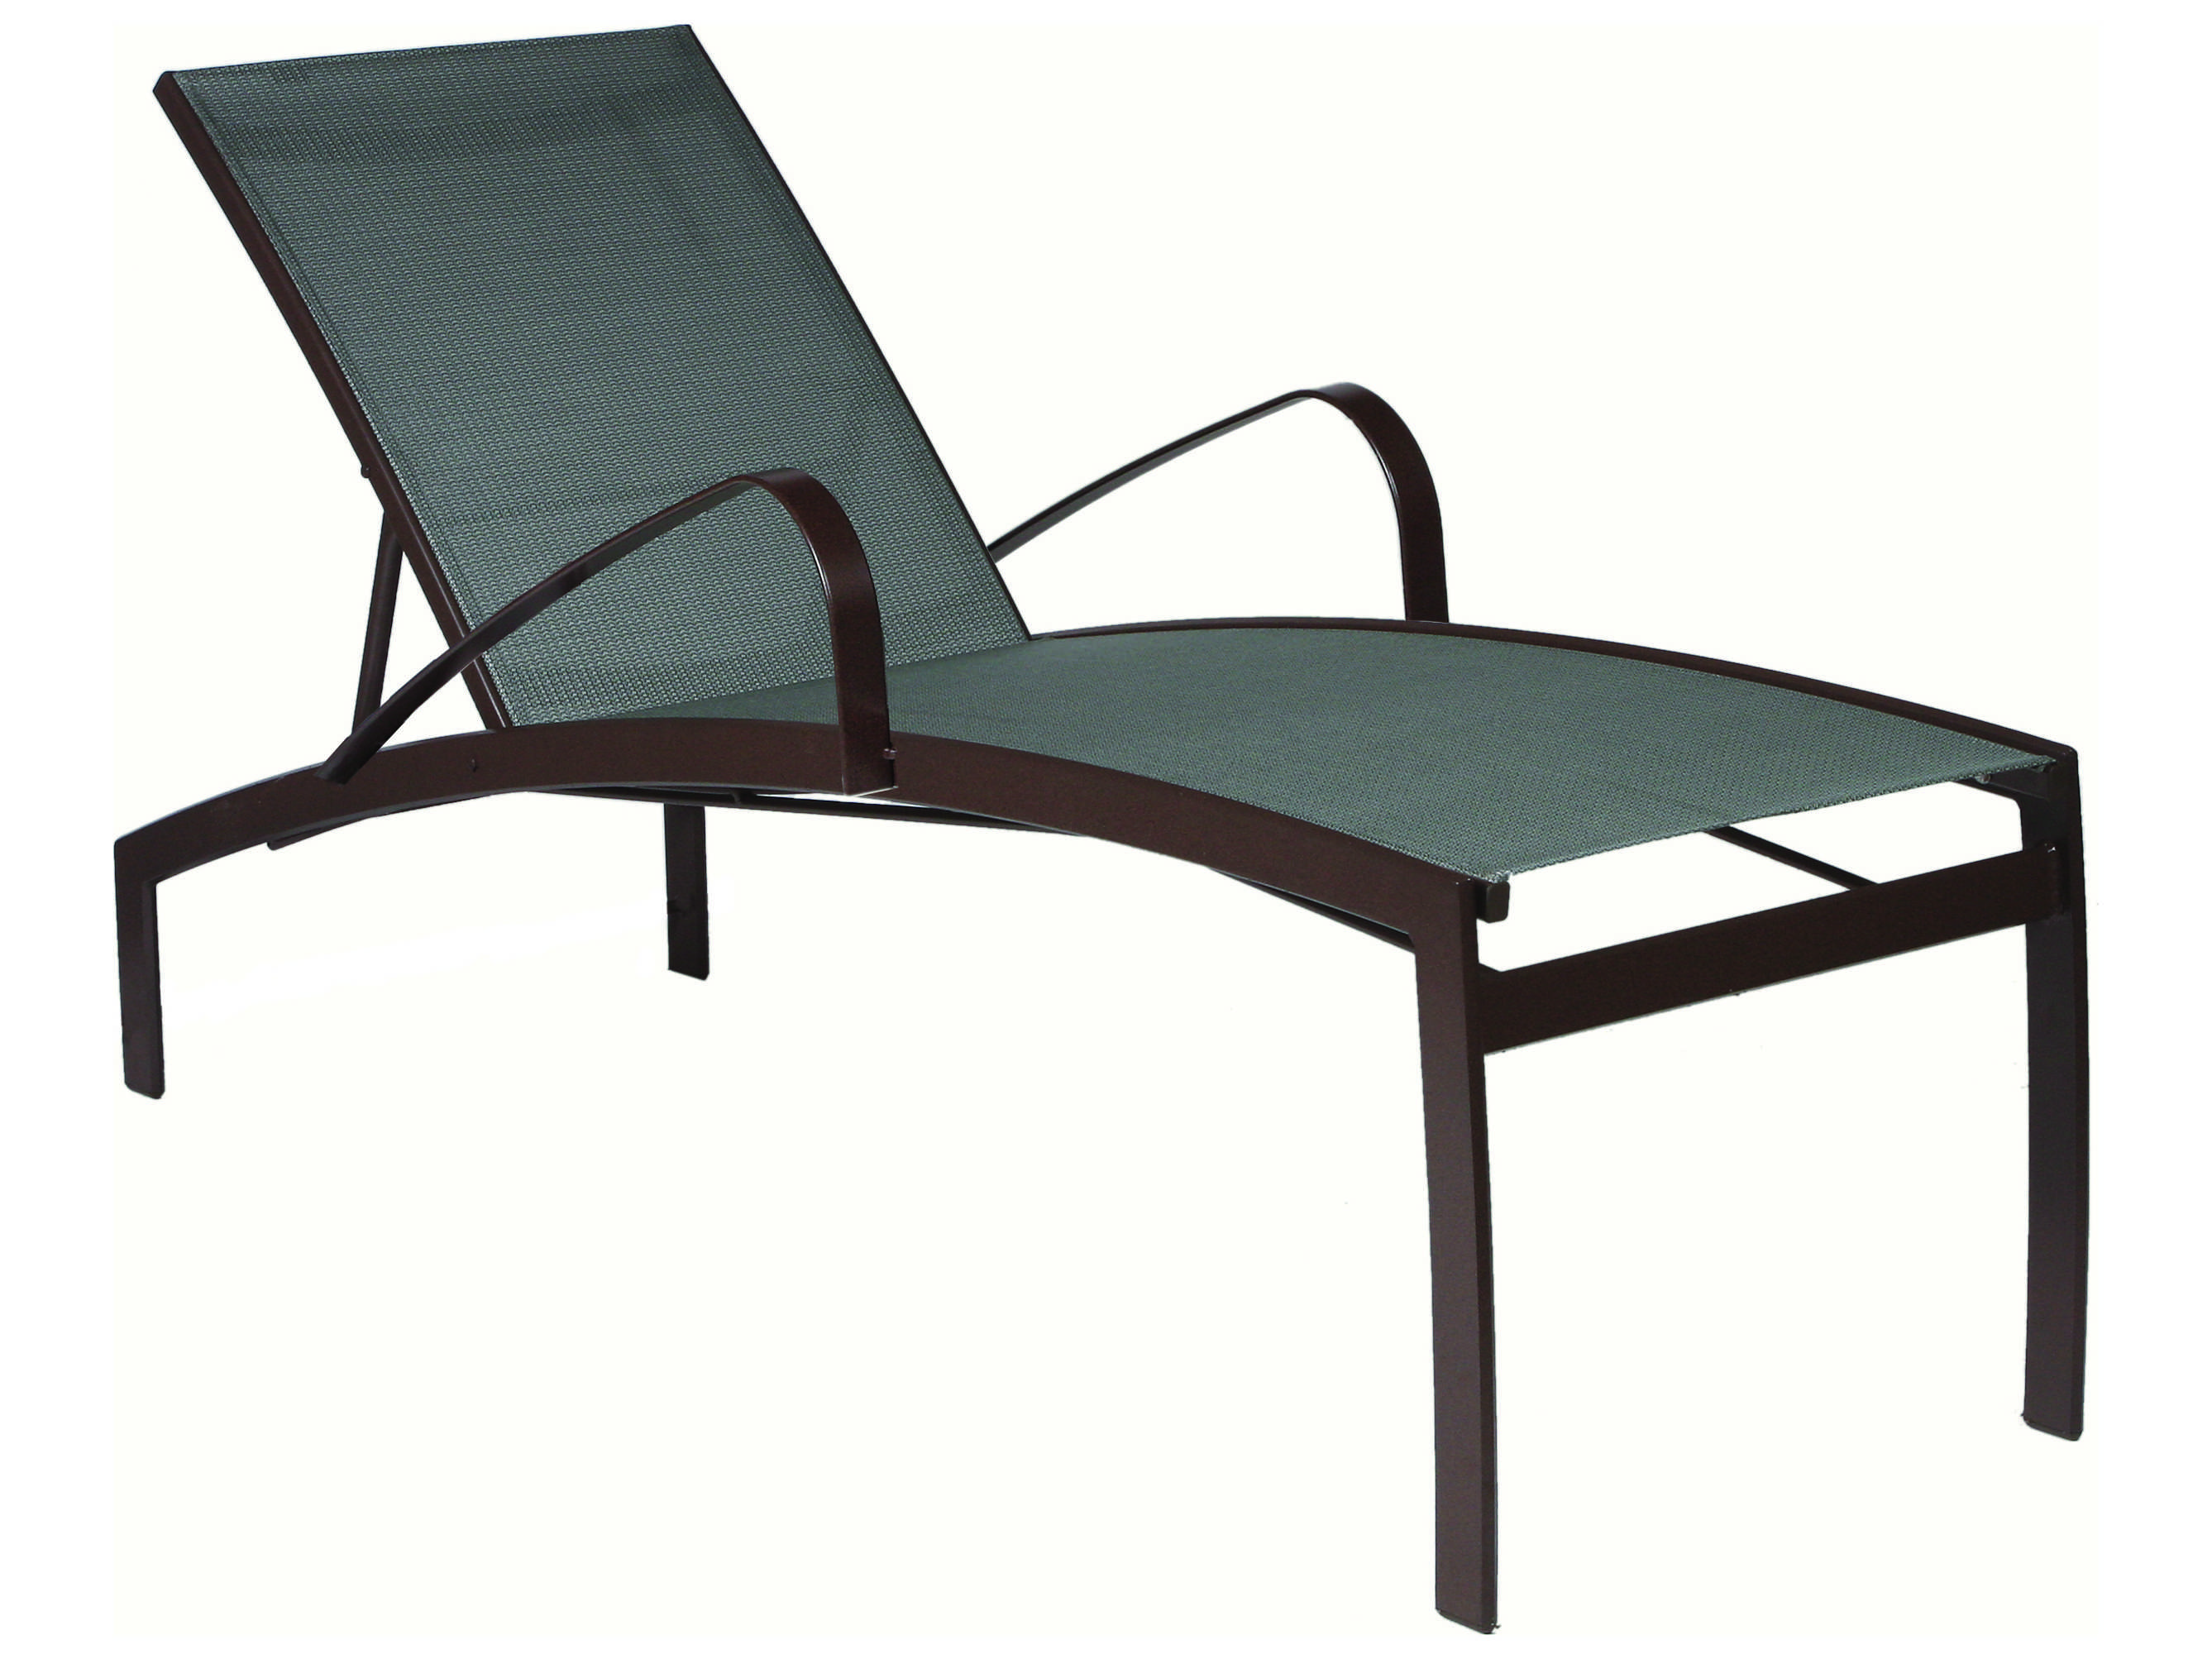 Suncoast vision sling cast aluminum chaise lounge 7994 for Aluminum chaise lounges